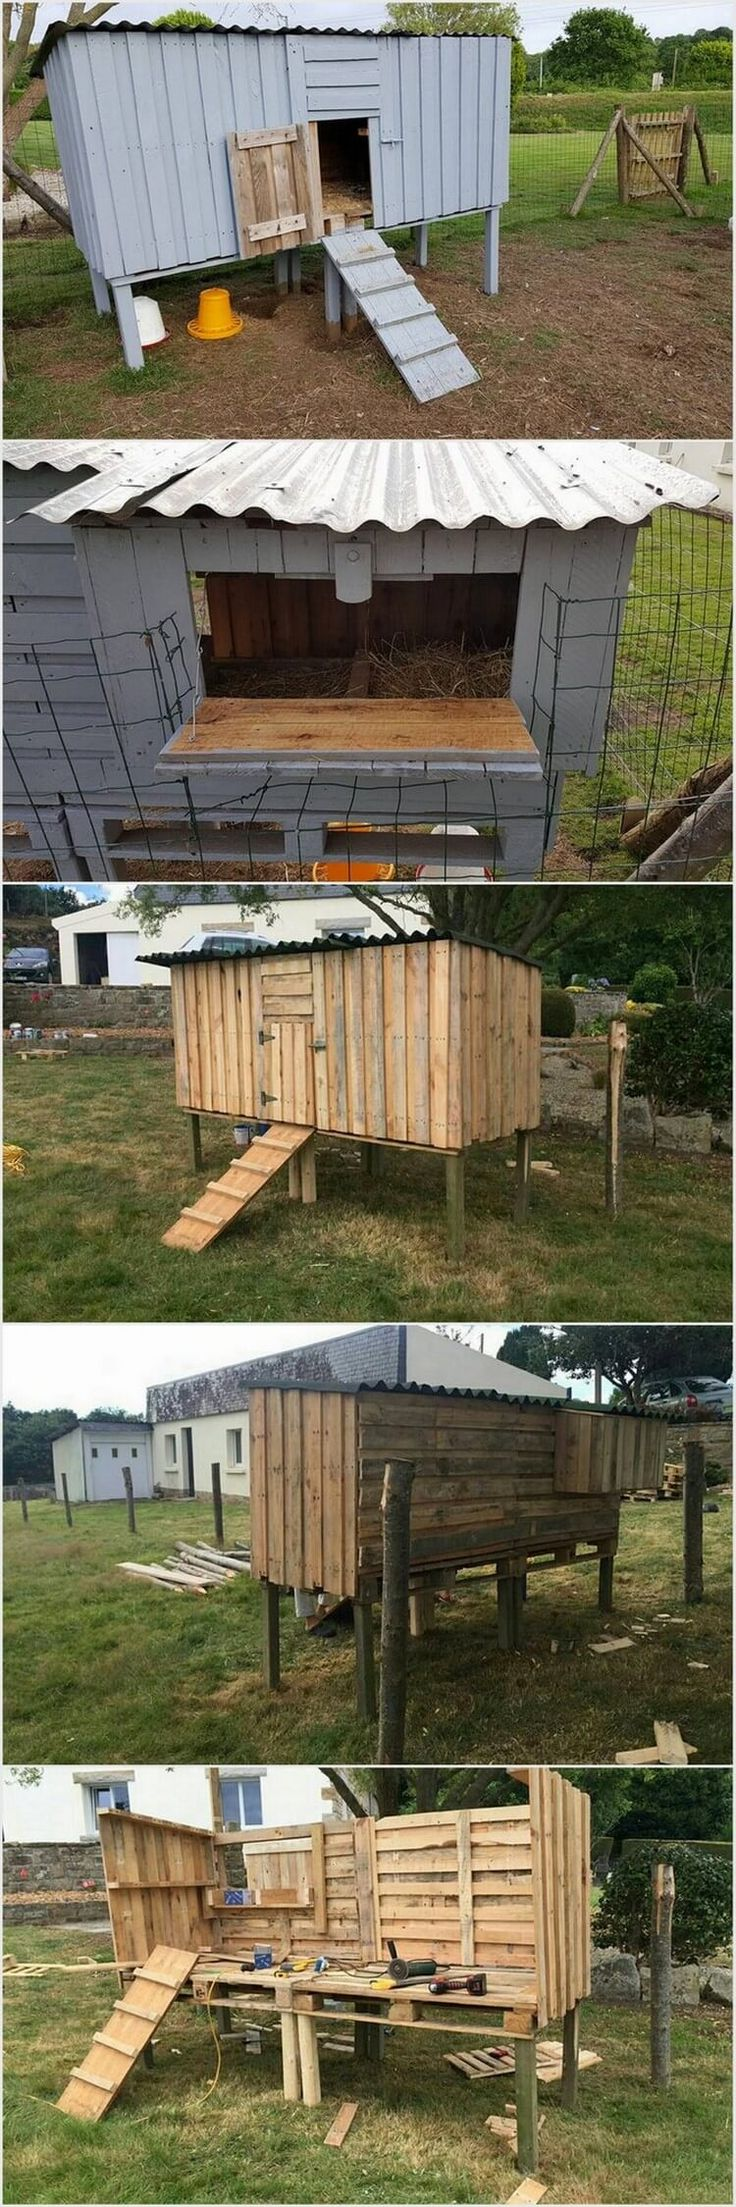 Chicken Coop Made Out of Shipping Wood Pallets